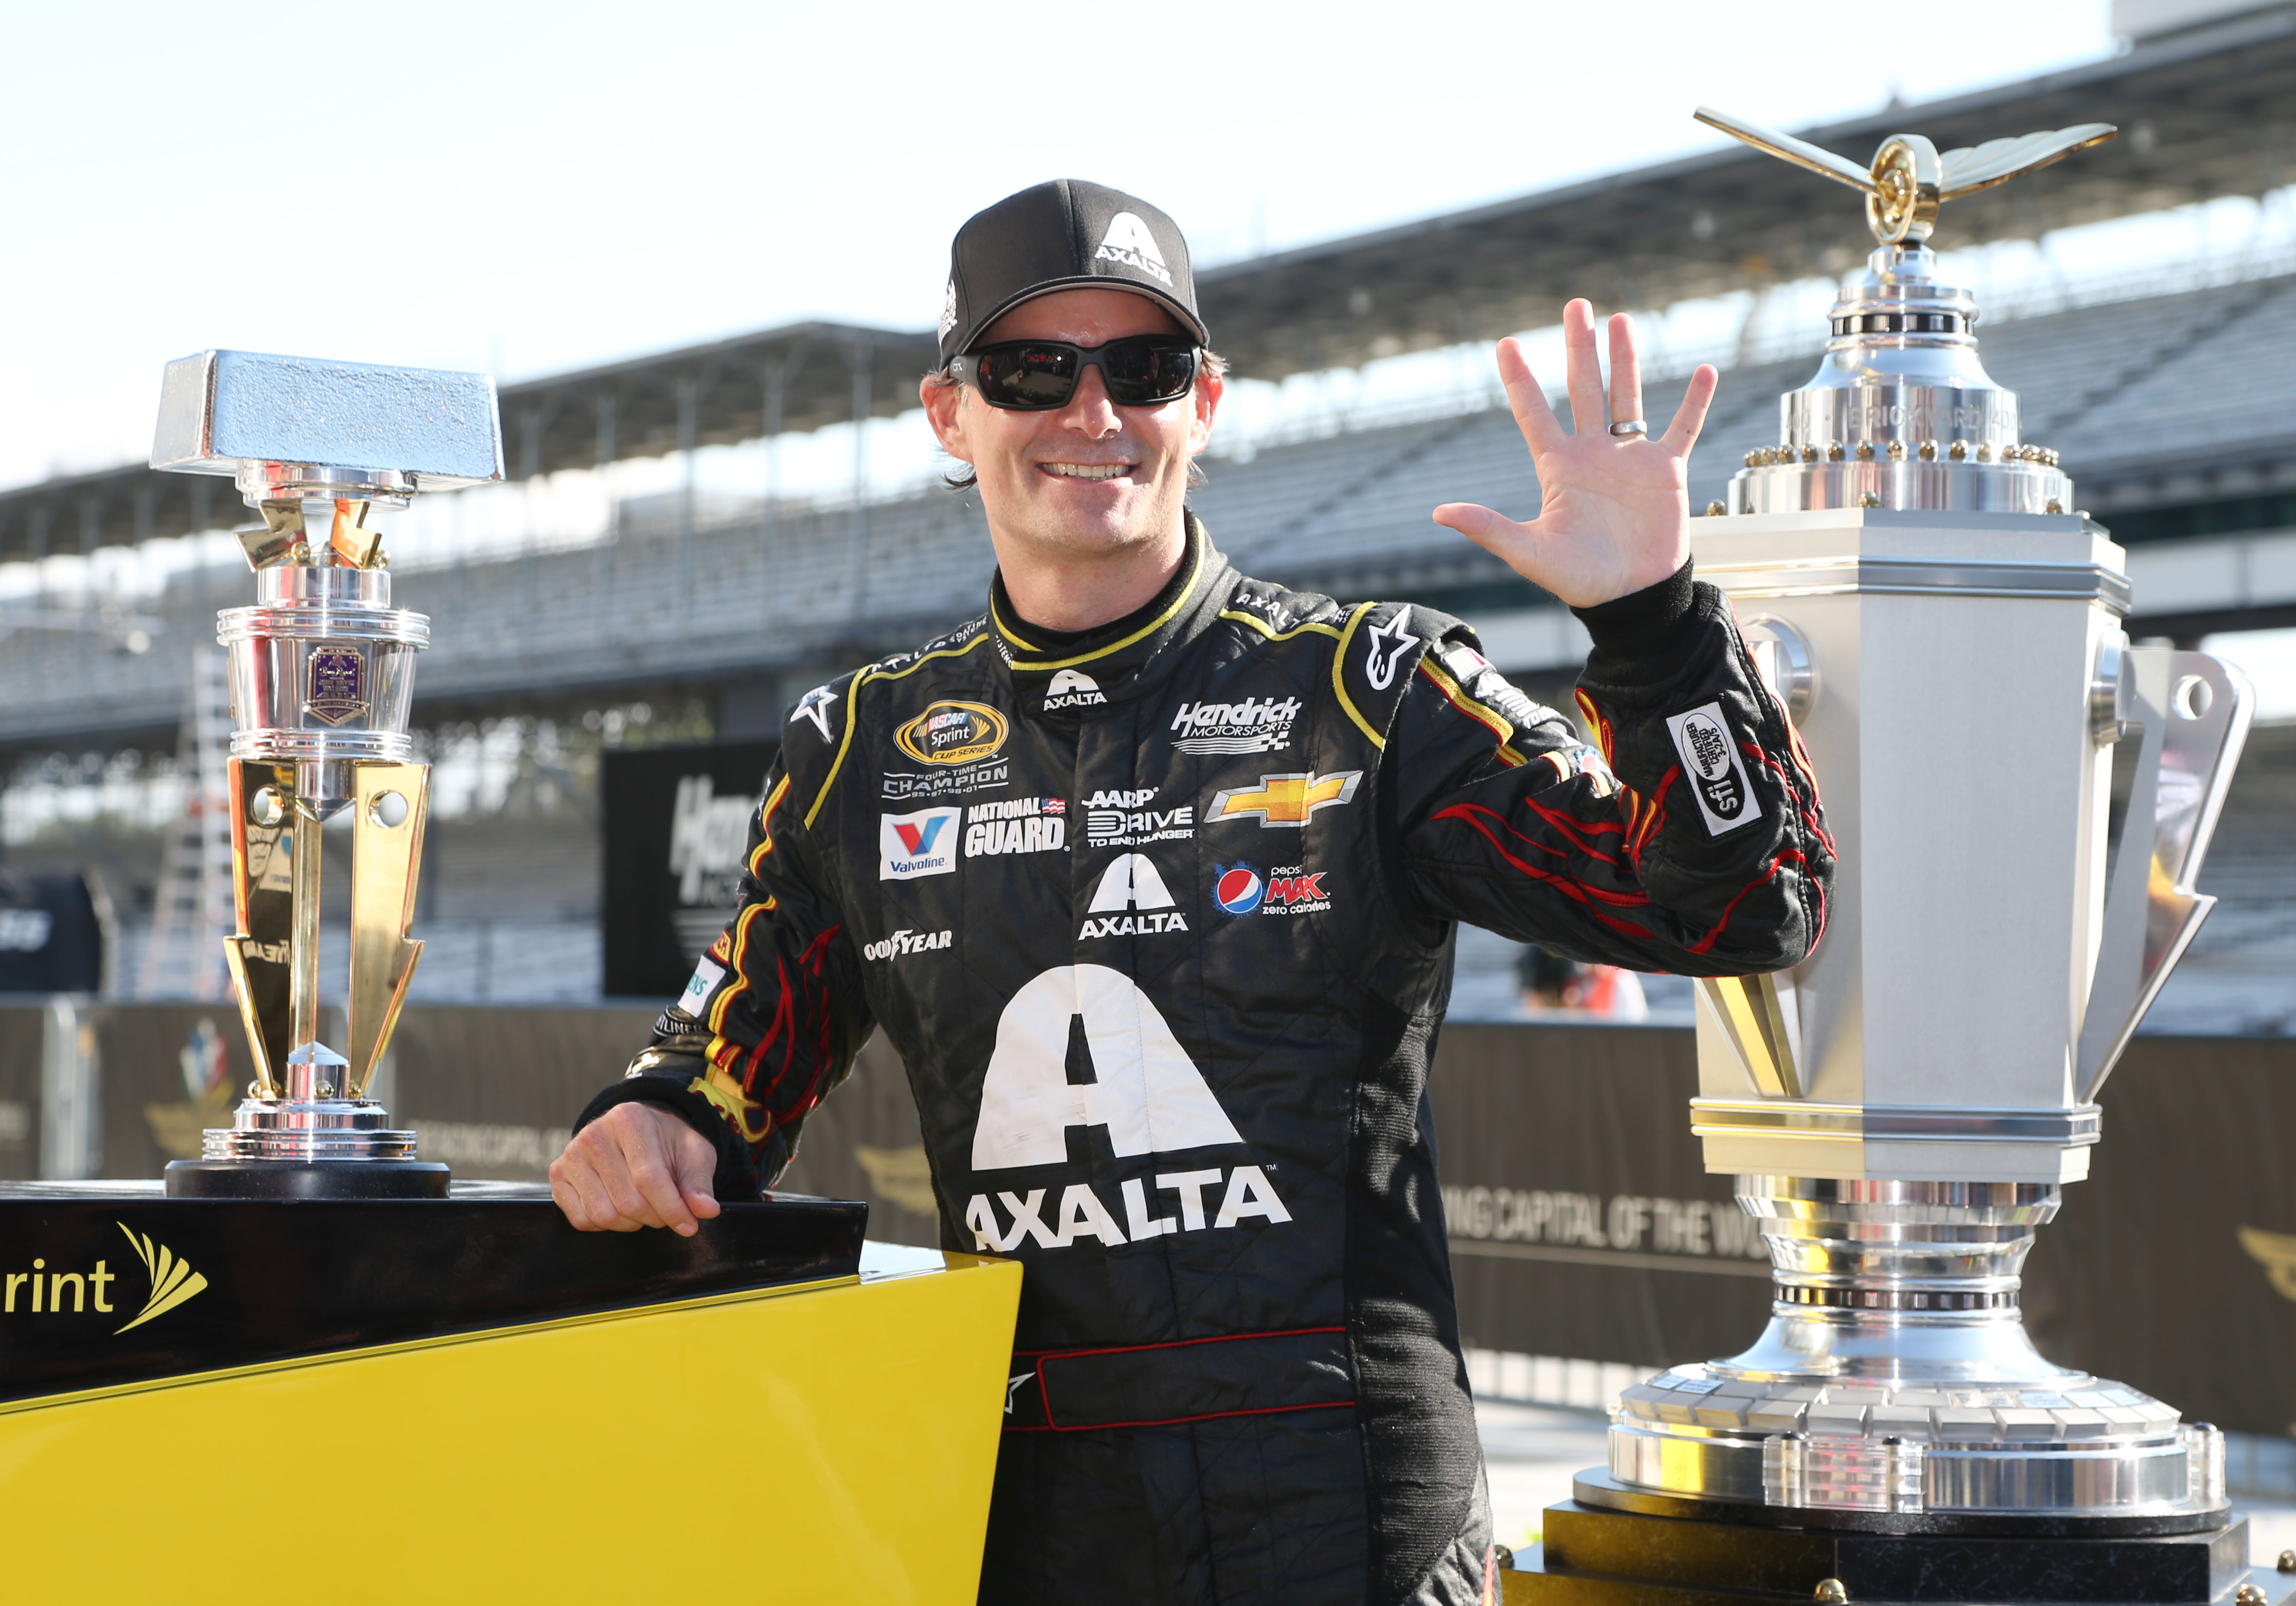 Jul 27, 2014; Speedway, IN, USA; NASCAR Sprint Cup driver Jeff Gordon who is now a five time Brickyard 400 winner holds up 5 fingers after winning the Crown Royal Brickyard 400 at Indianapolis Motor Speedway. Mandatory Credit: Brian Spurlock-USA TODAY Sports